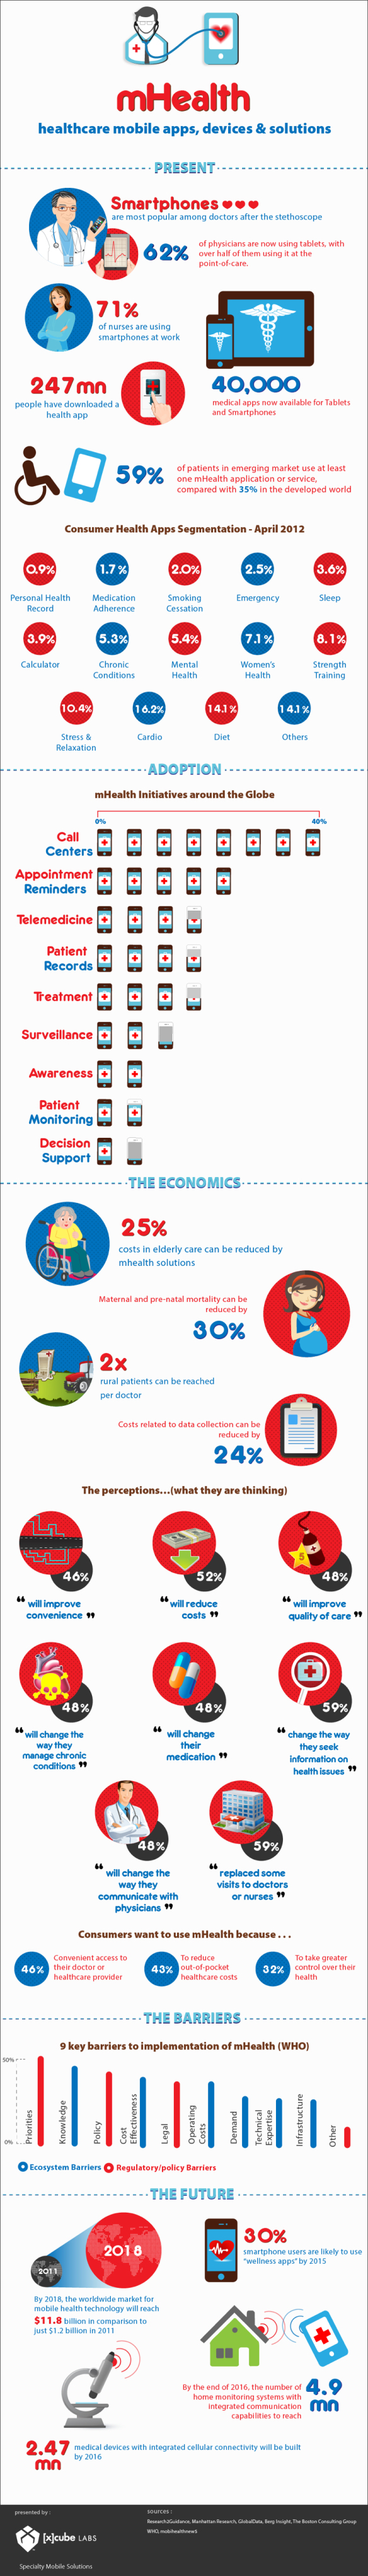 mhealth infographic Infographic health, Mobile